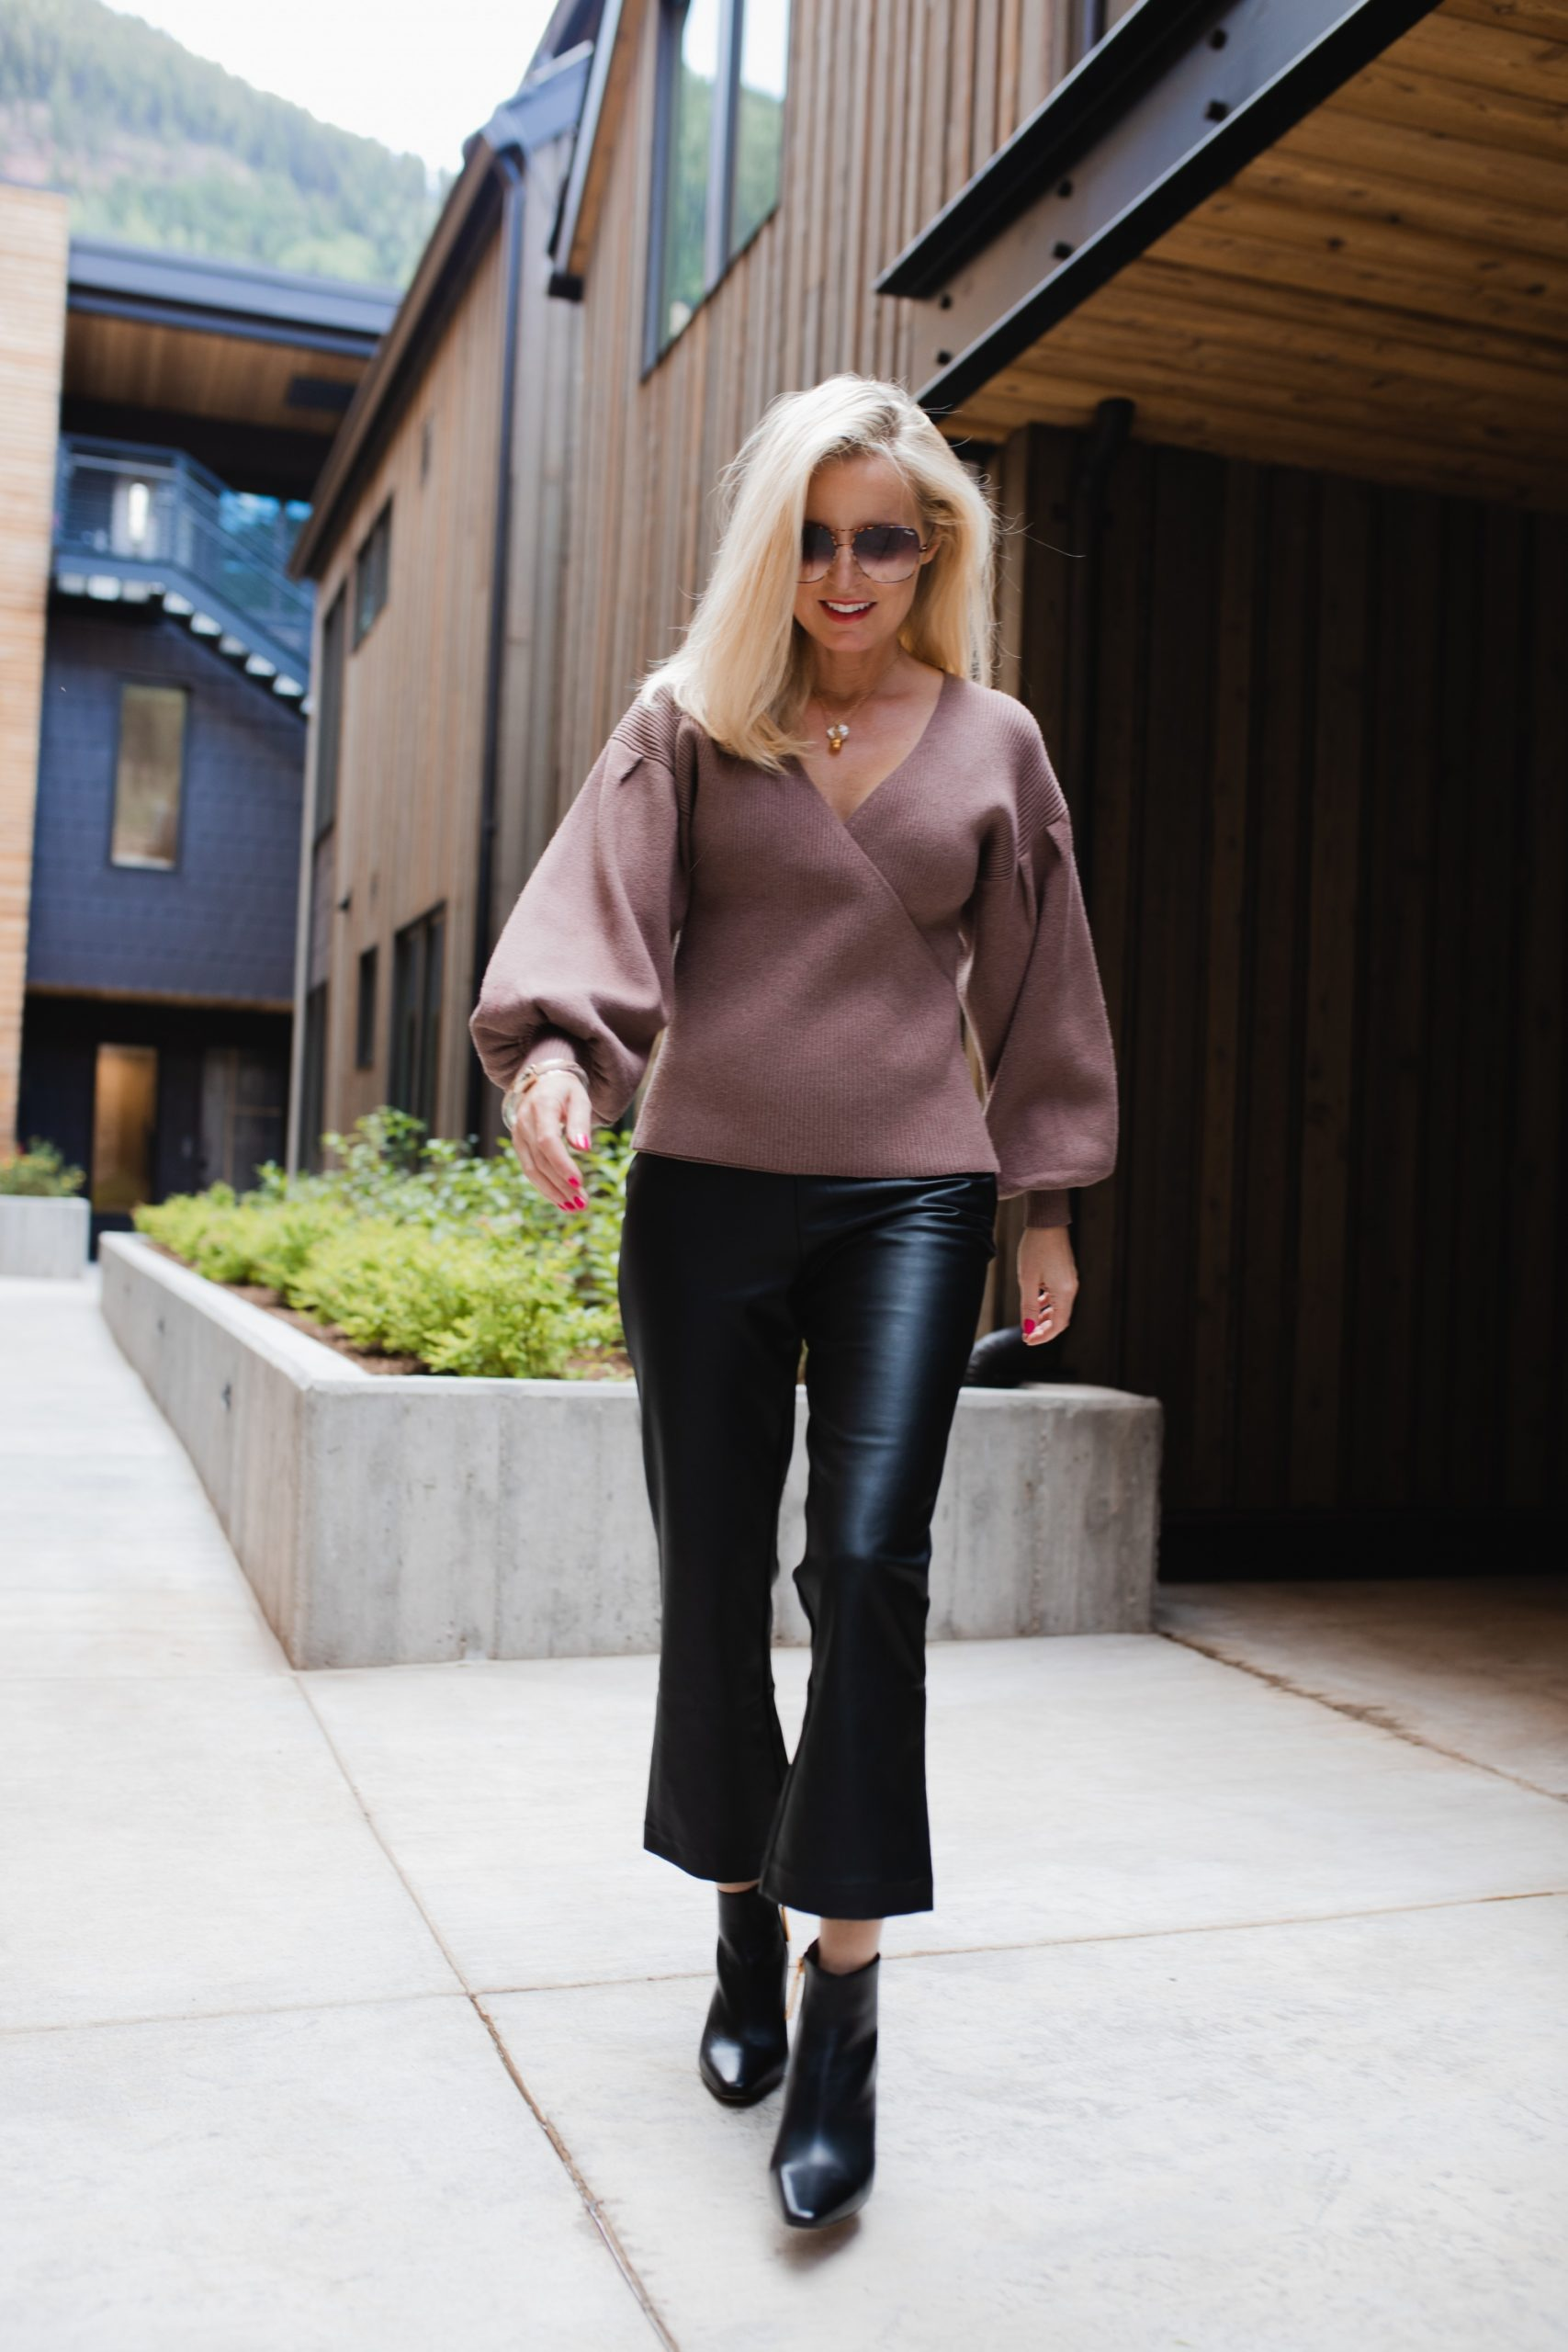 STYLE GUIDE: DATE NIGHT OUTFITS FOR EVERY SEASON